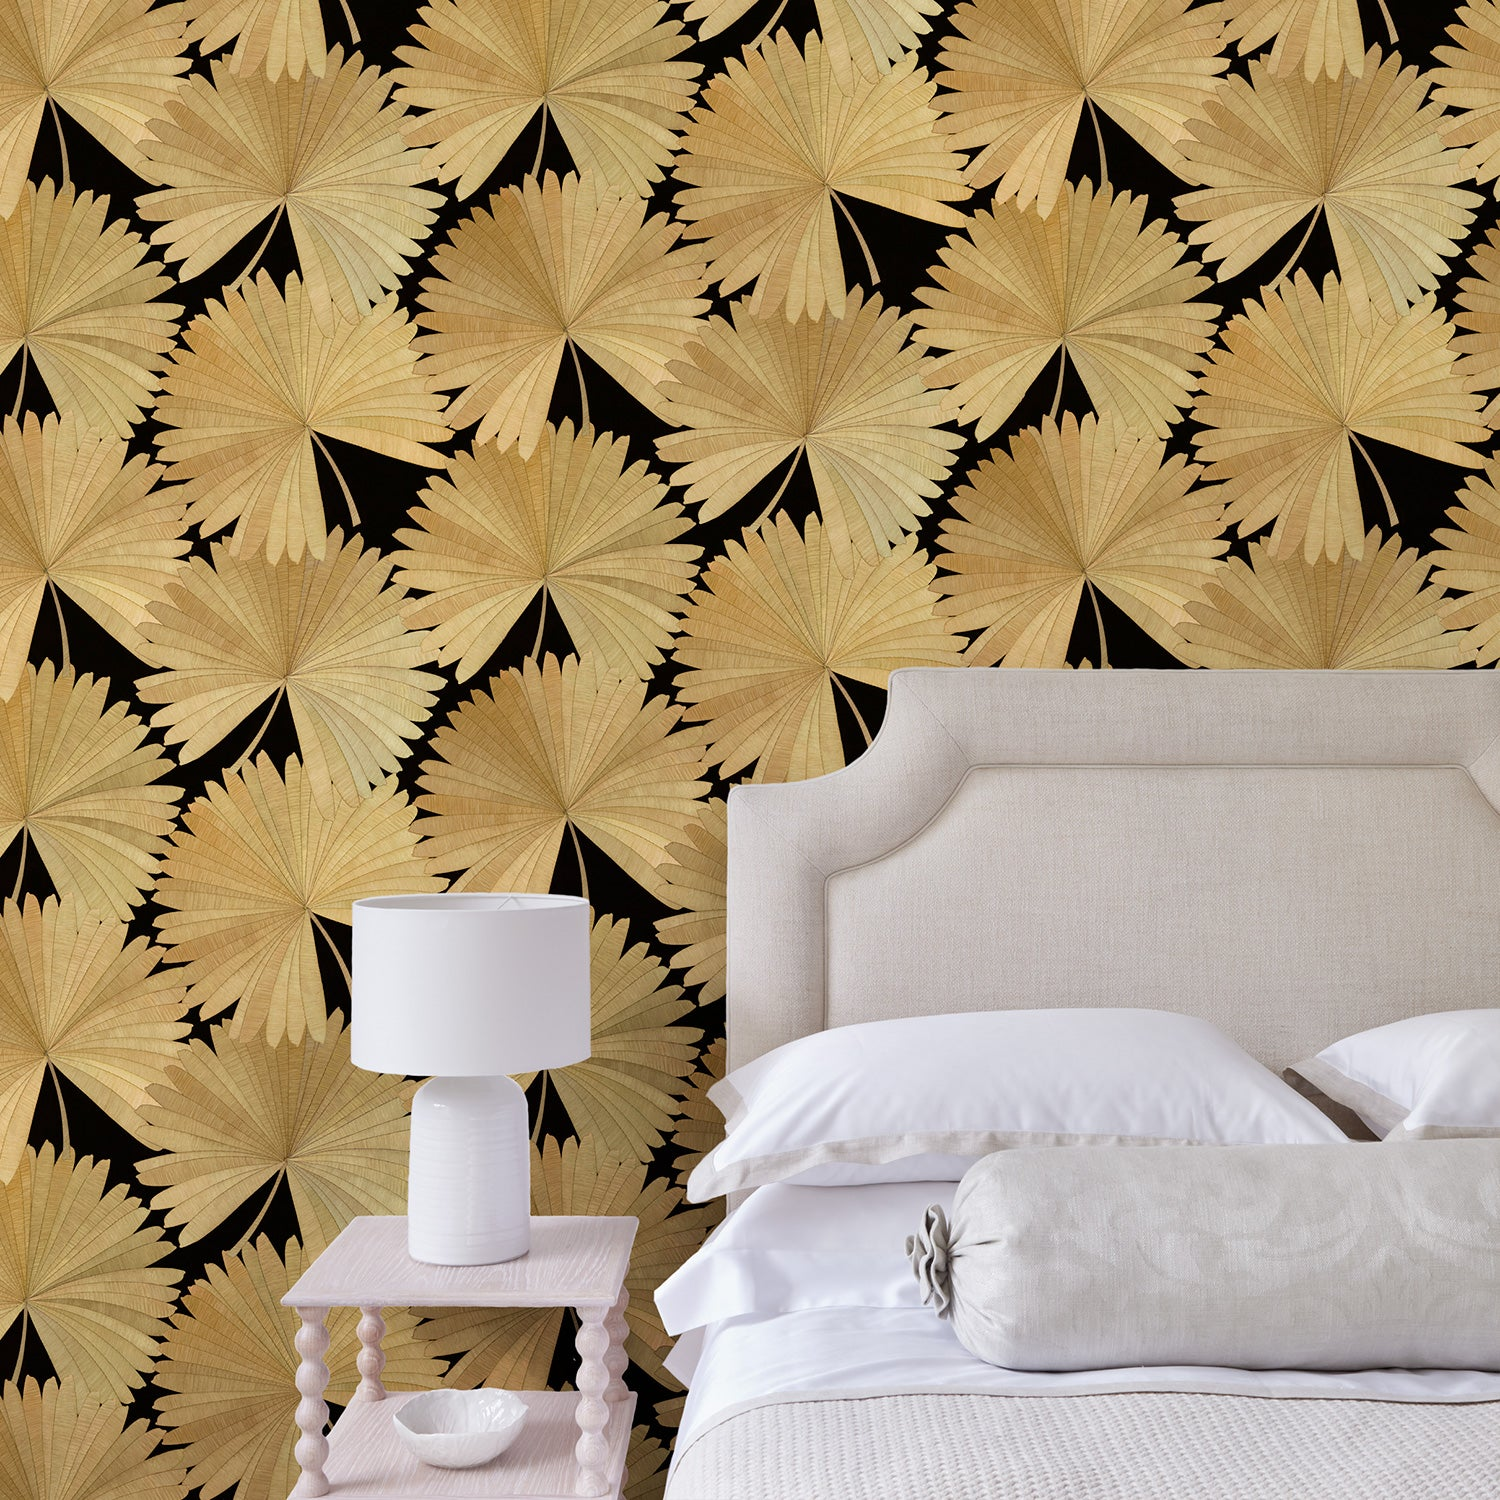 Bedroom featuring a Luxury wallpaper featuring a tropical palm design in dark colours